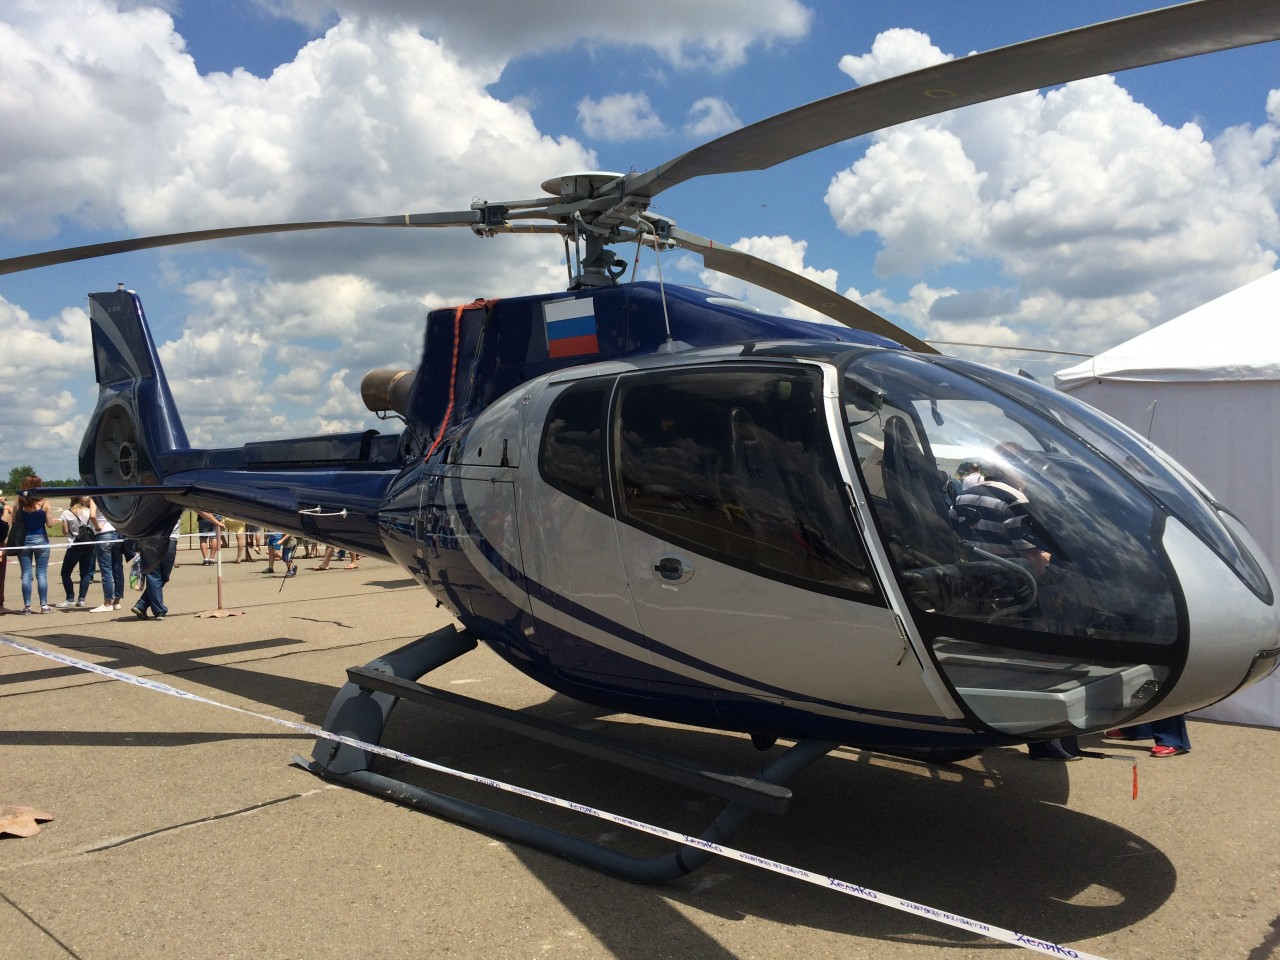 Airbus Helicopters EC 130 B4